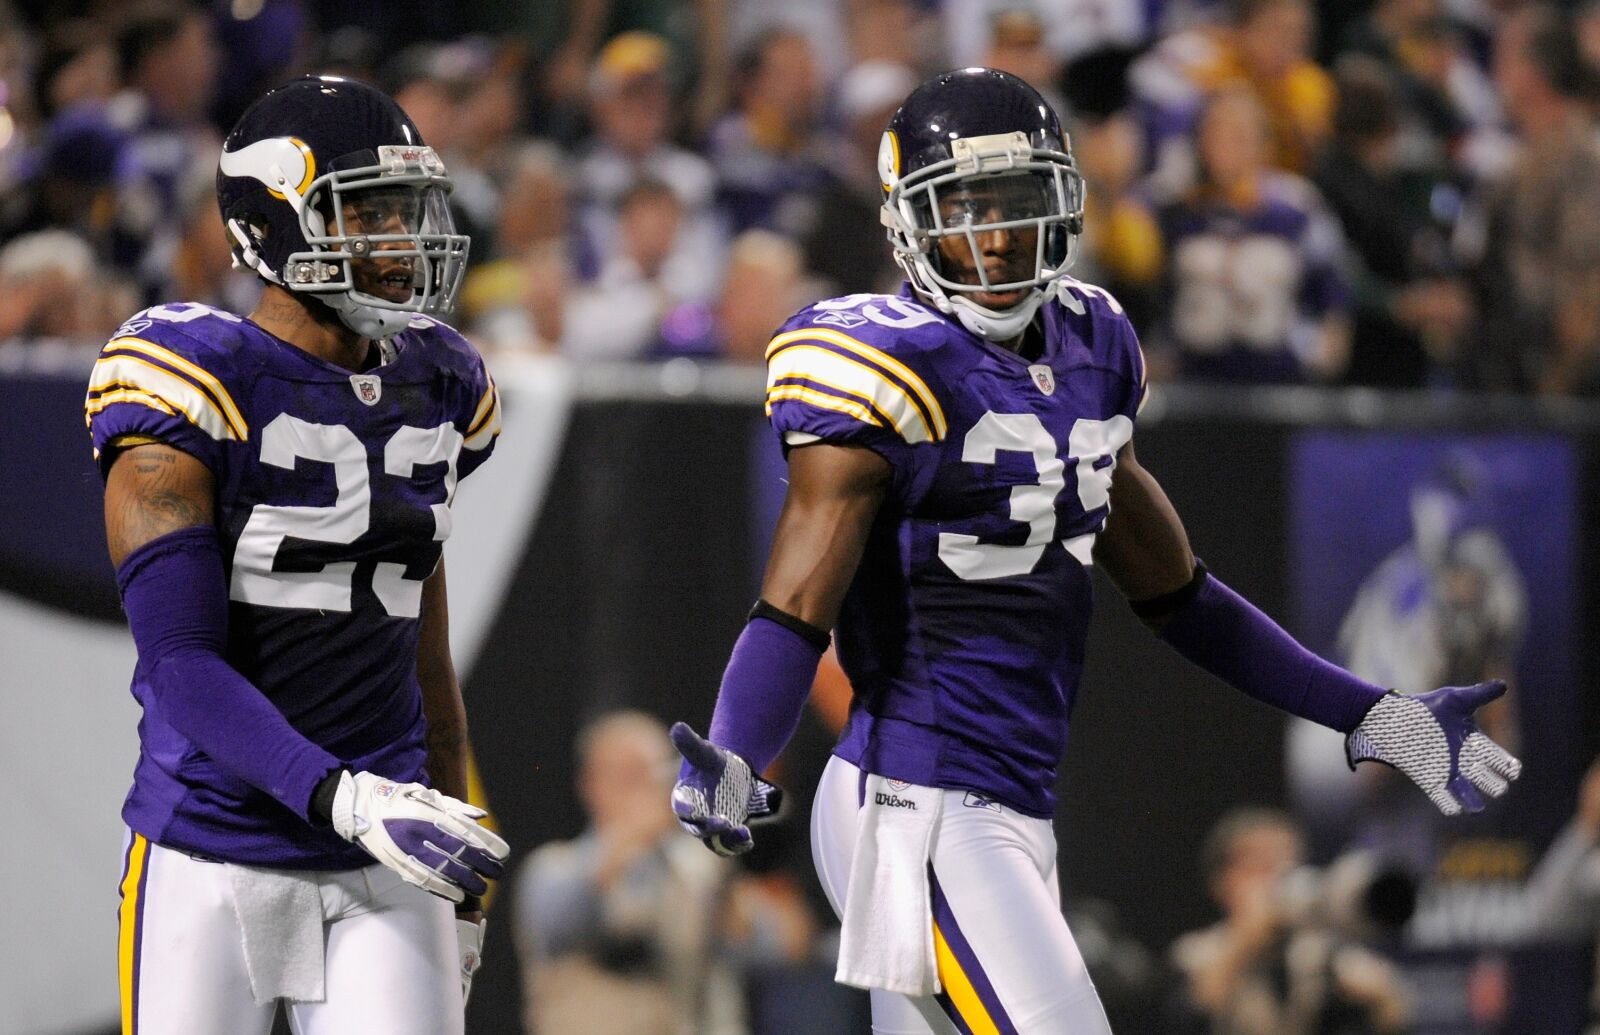 Will the Vikings wear a throwback uniform in 2019?